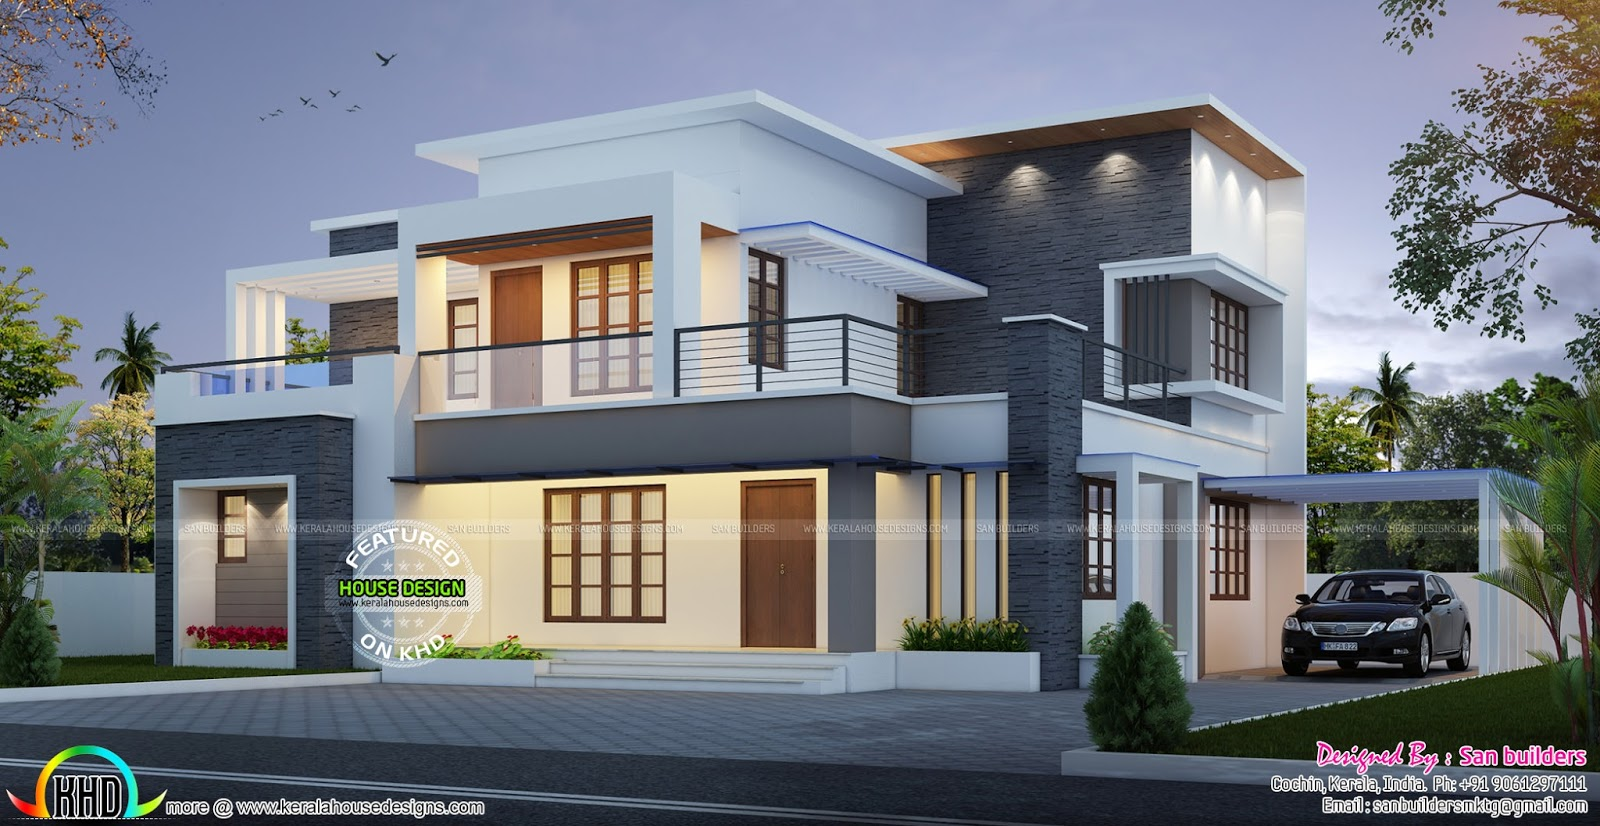 House plan and elevation by san builders kerala home for New kerala house plans with front elevation